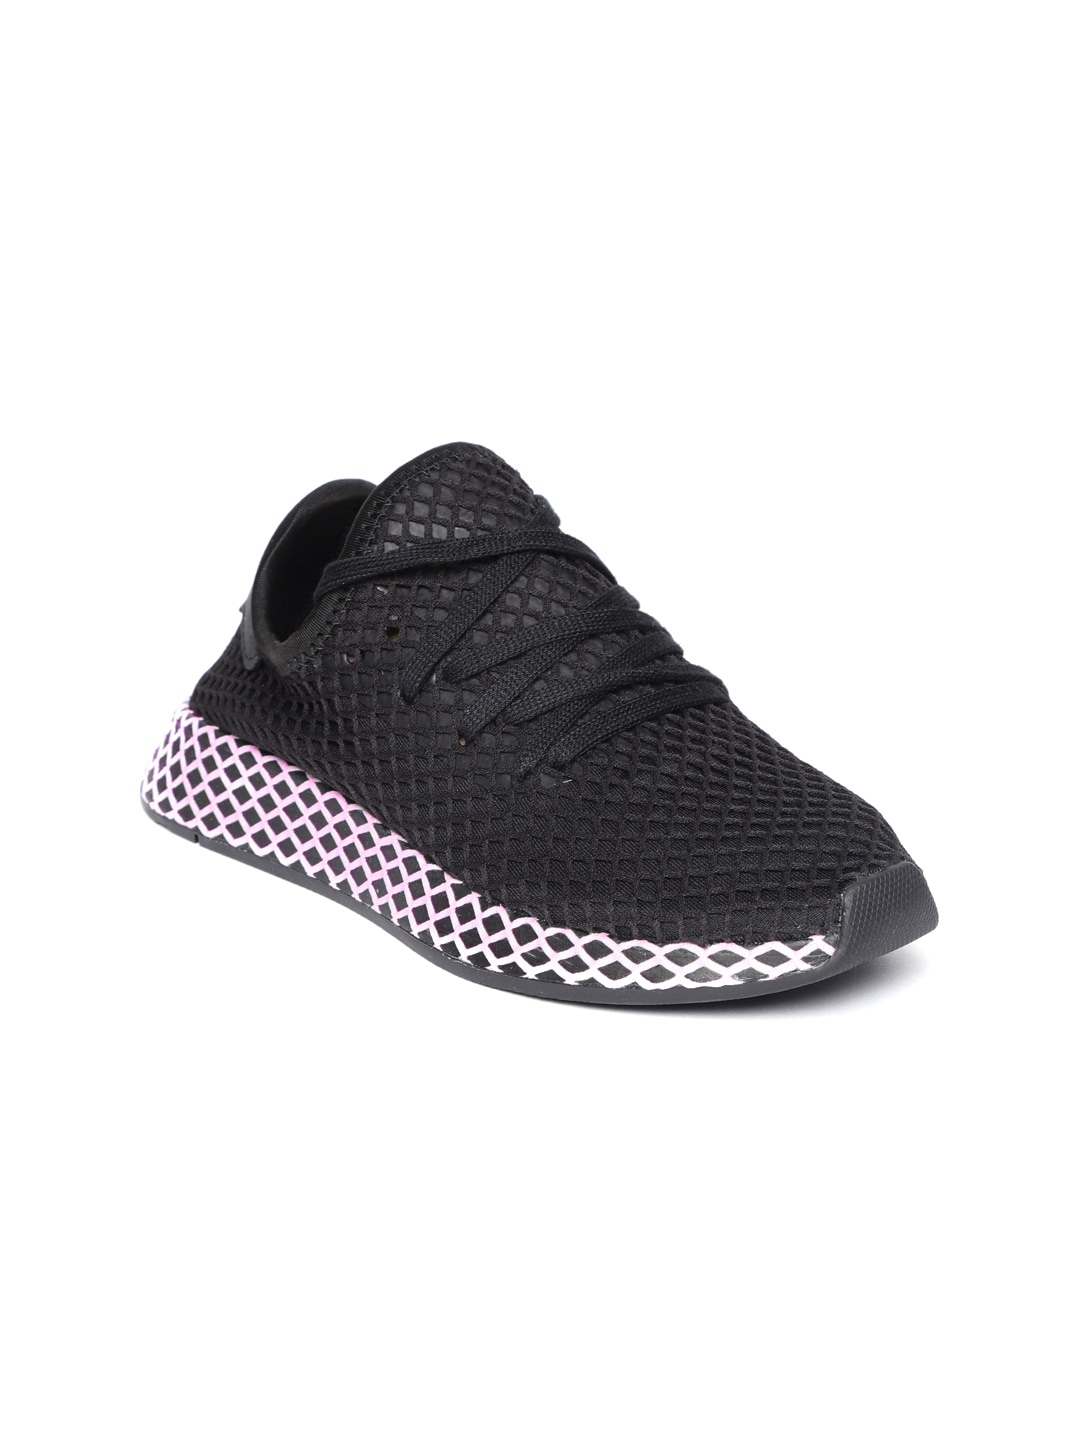 b0beb26639a10 Adidas Deerupt - Buy Adidas Deerupt online in India